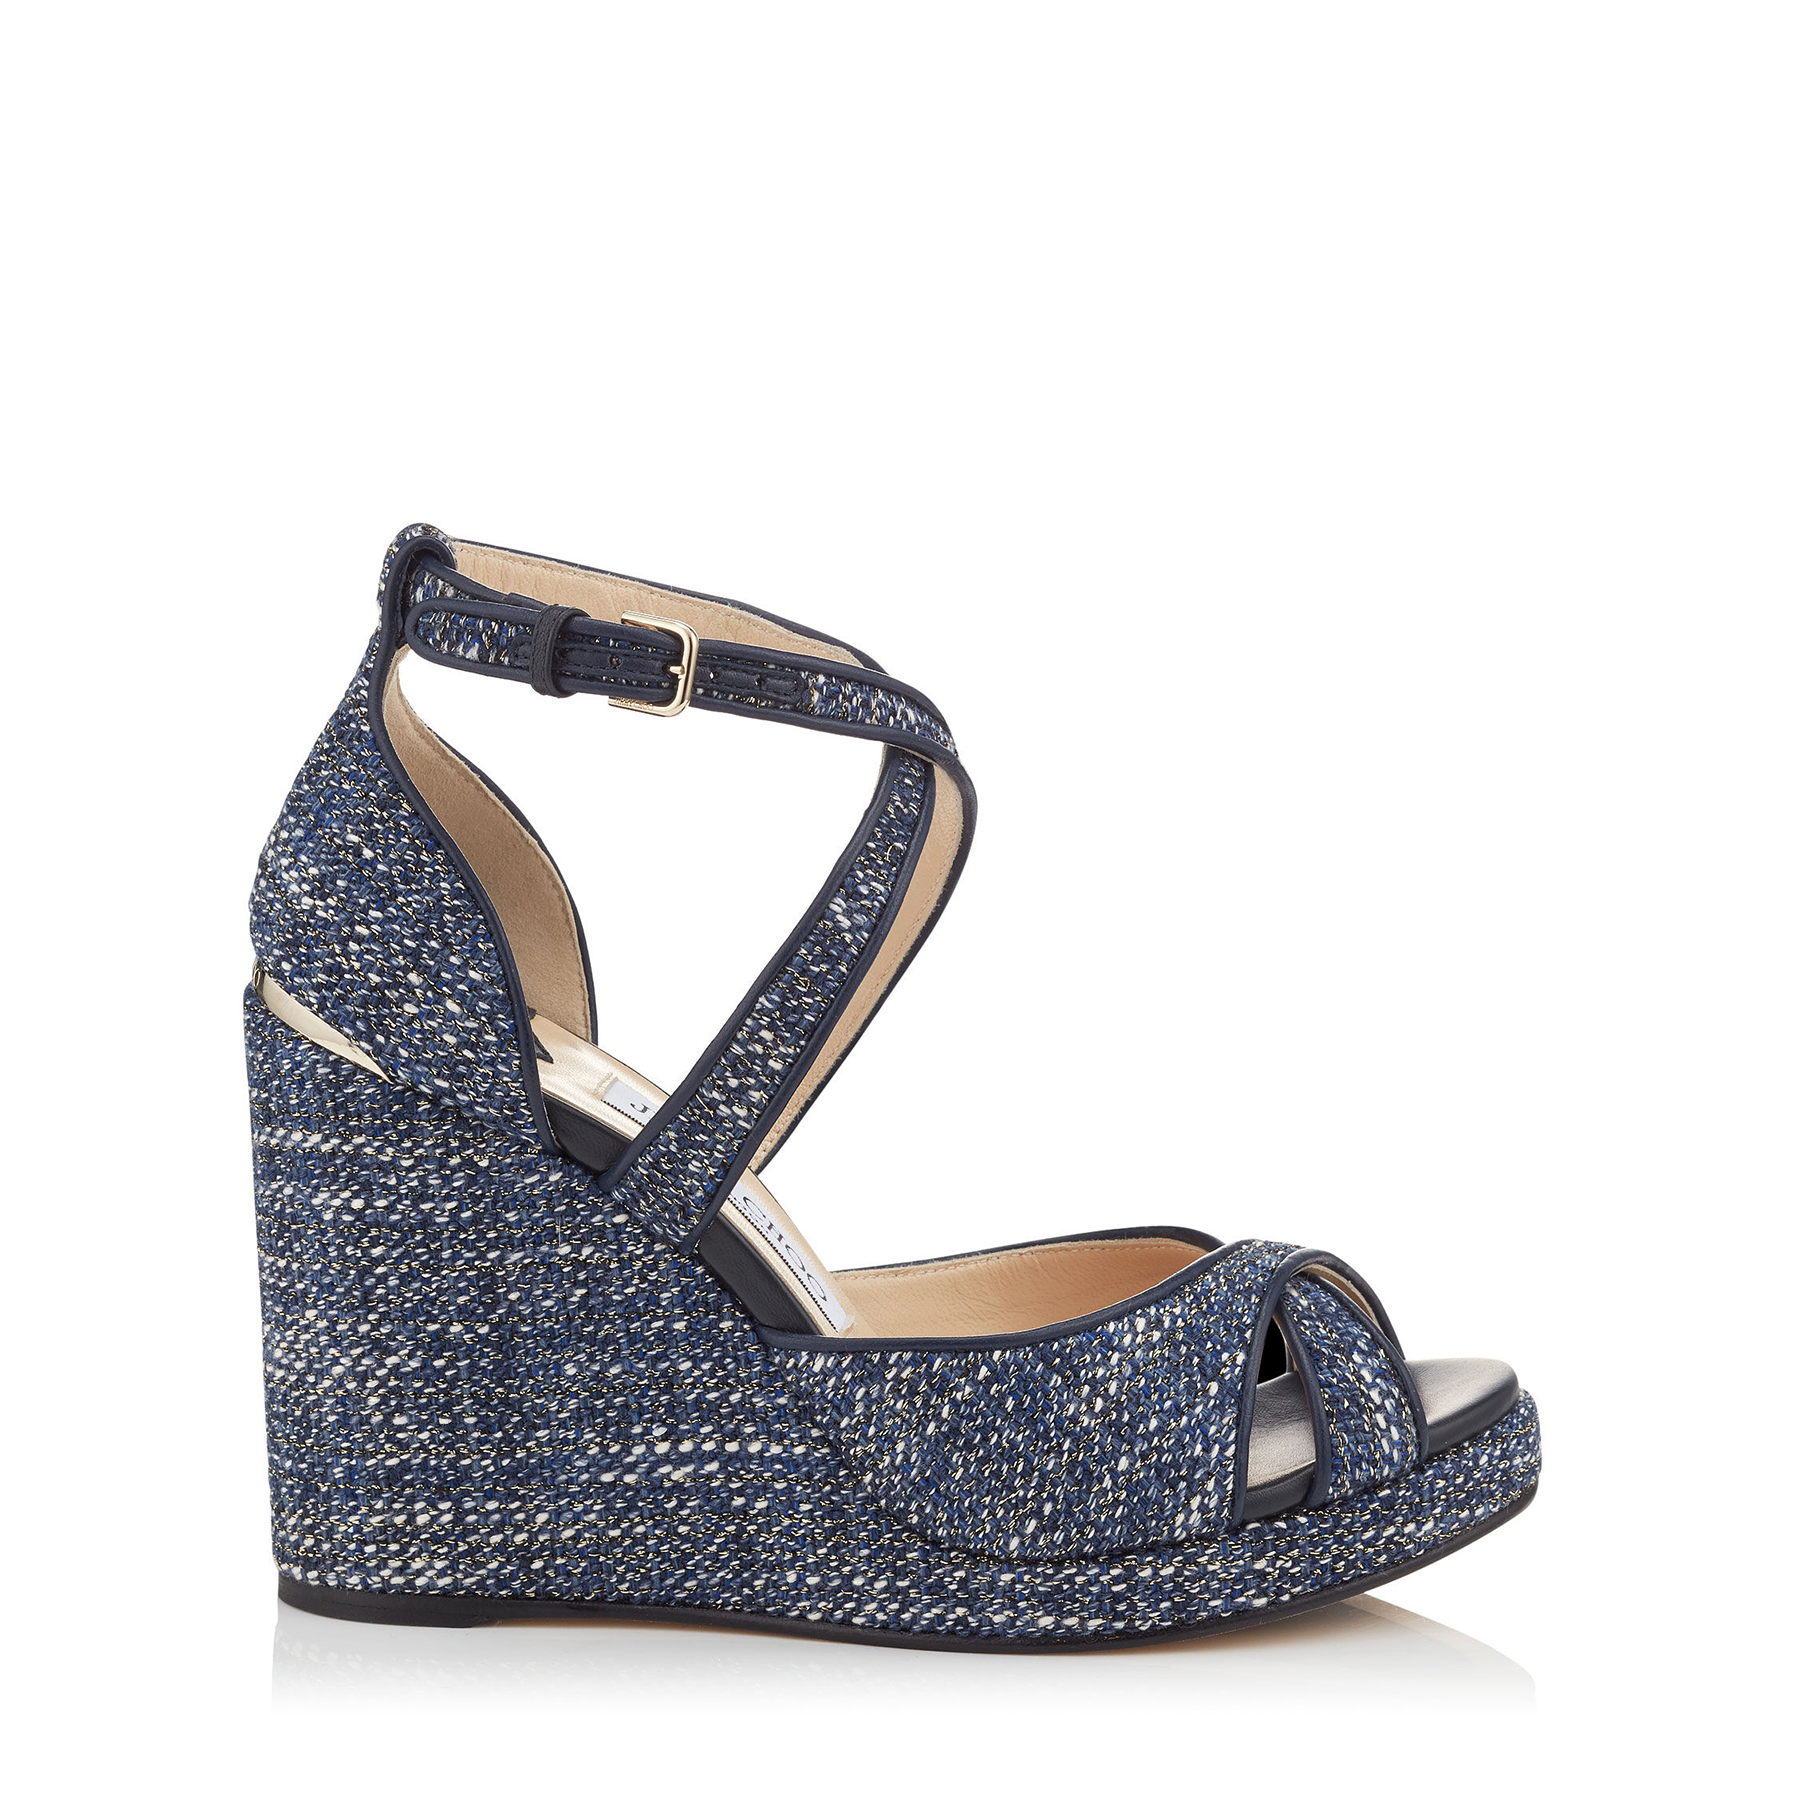 ALANAH 105 Navy Mix Metallic Tweed Wedges by Jimmy Choo